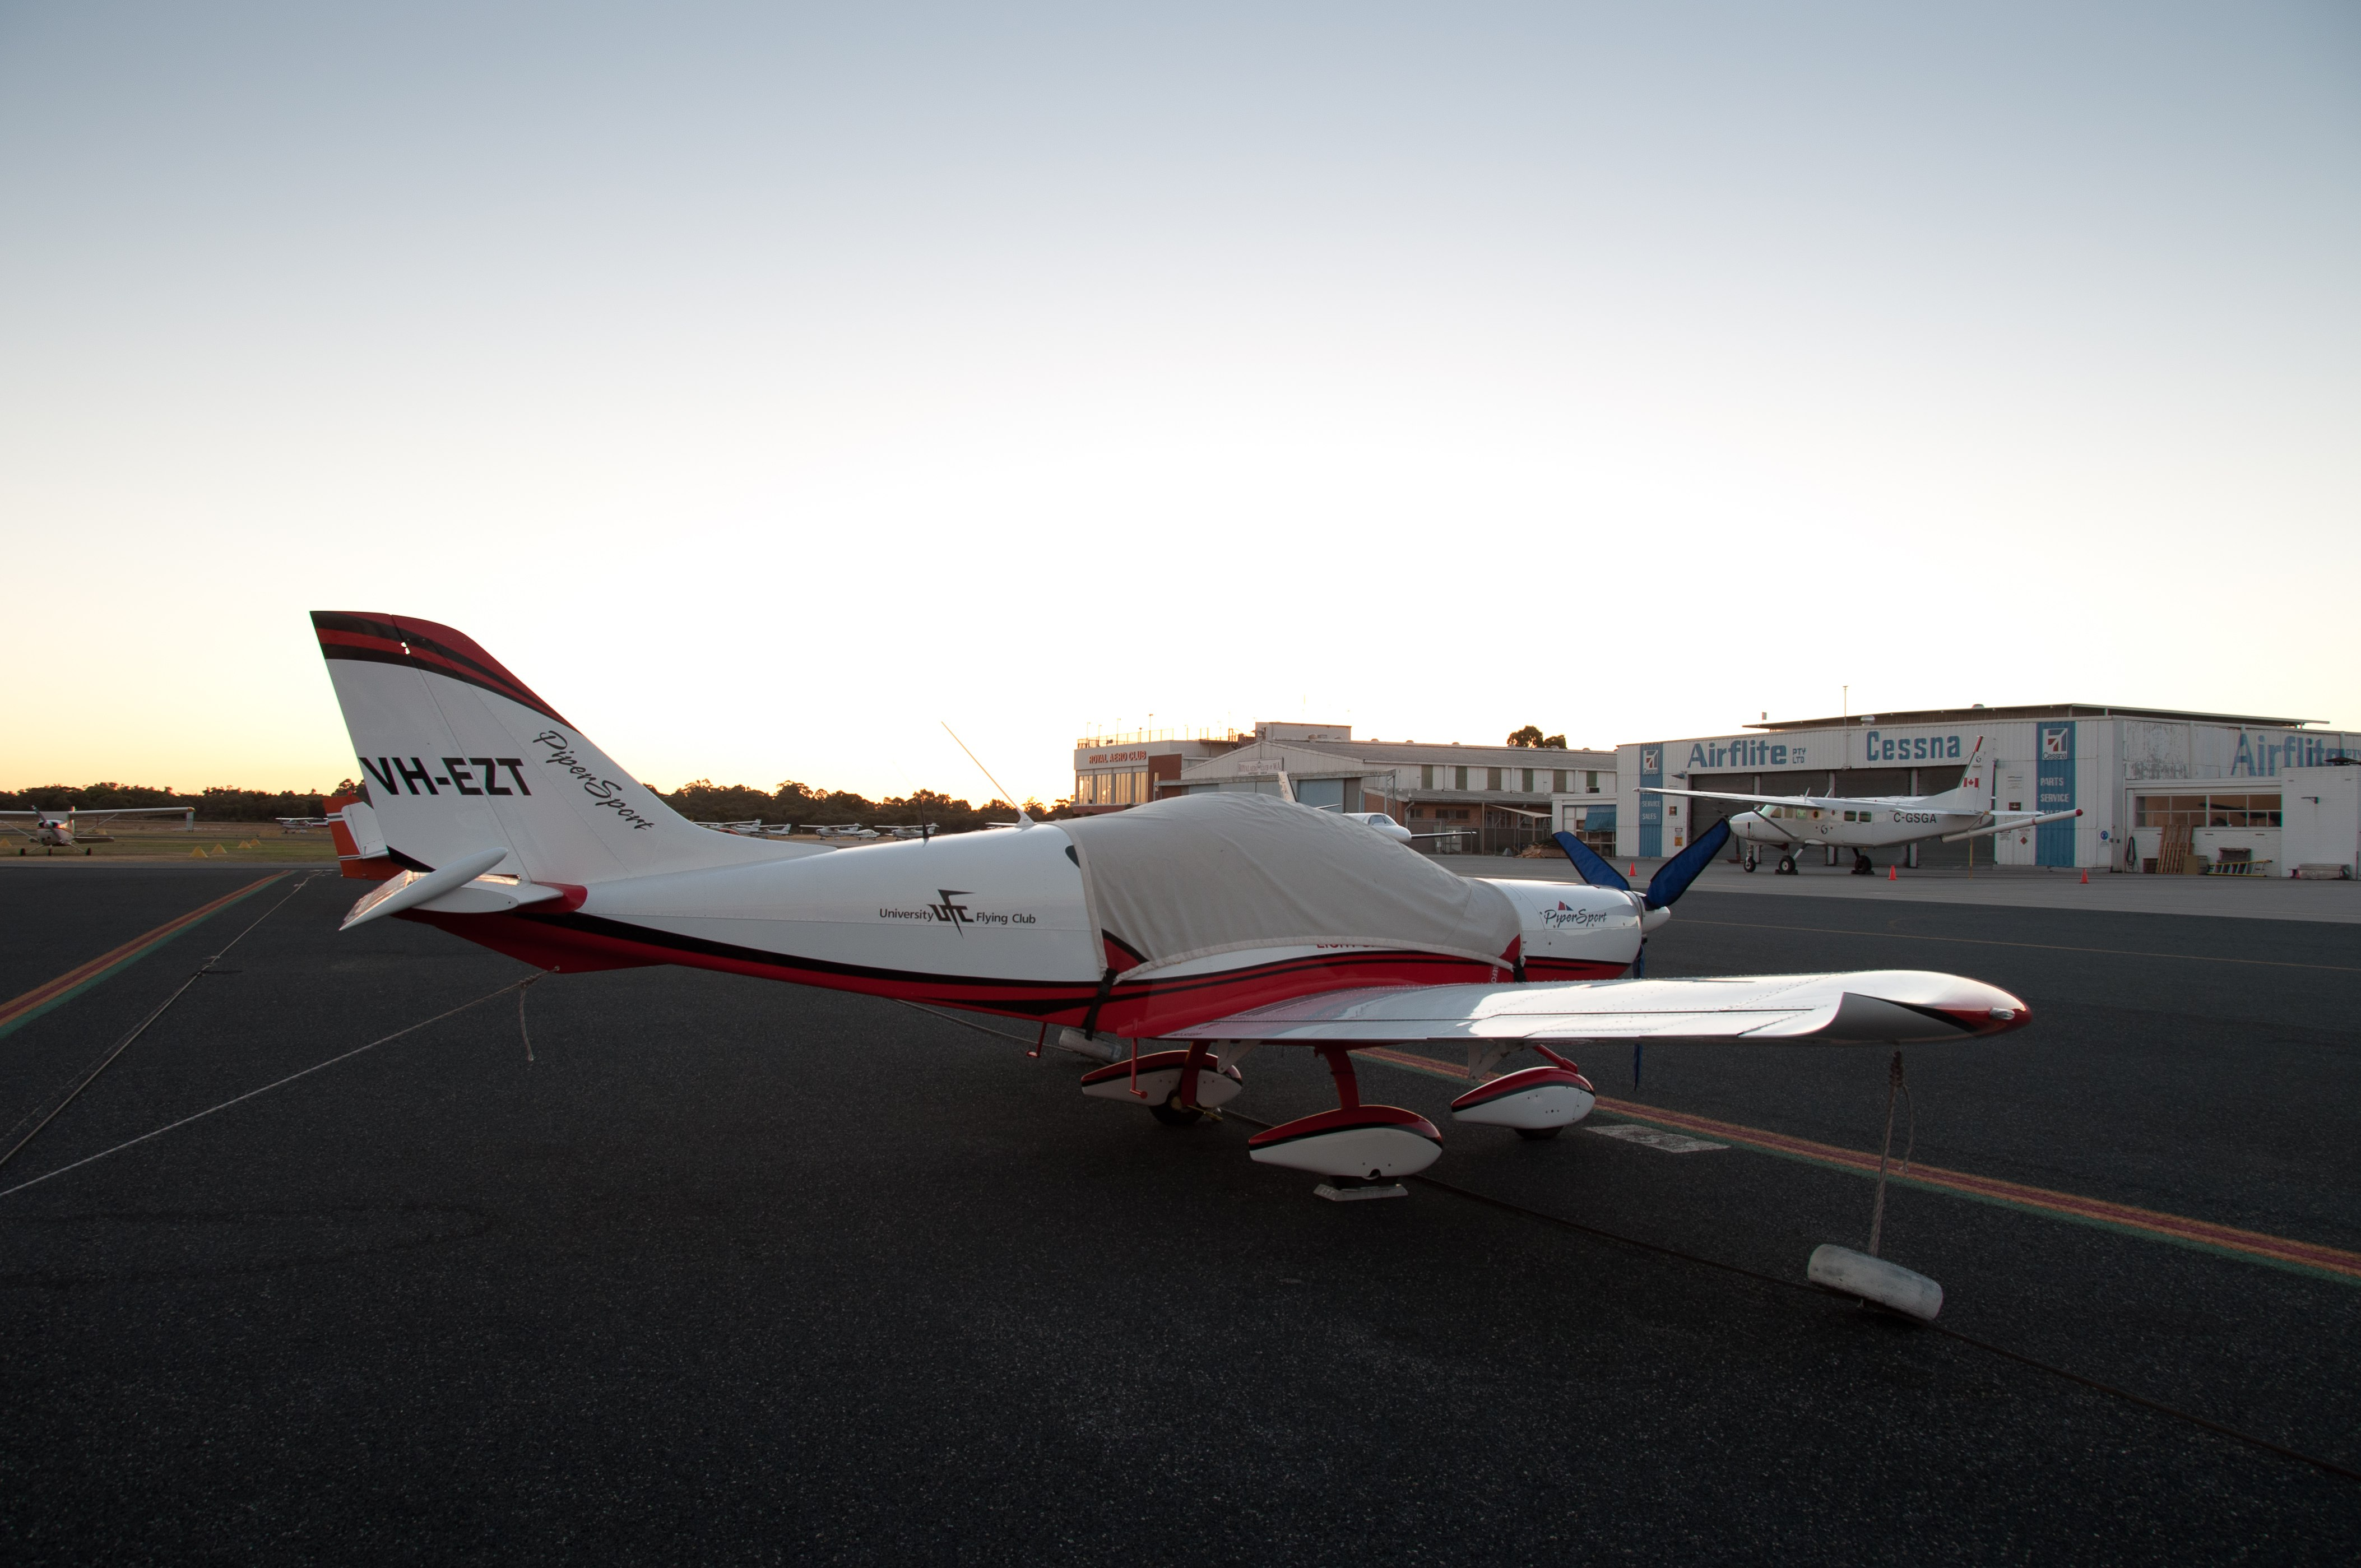 VH-EZT CSA pipersport sportscruiser parked at jandakot near air australia